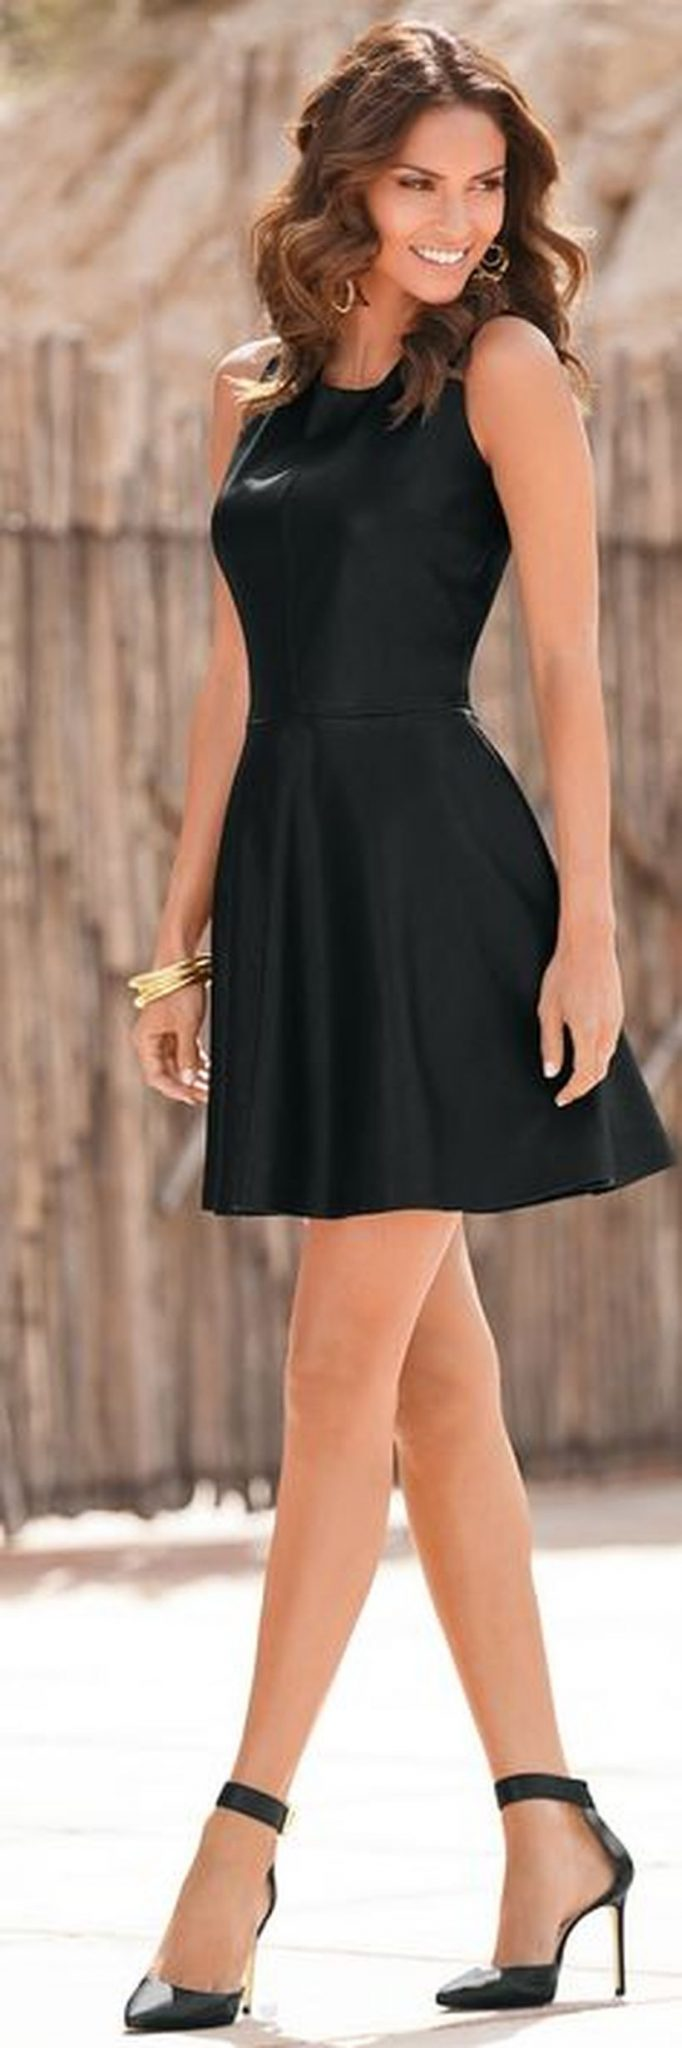 Gorgeous elegance black dress outfits 19